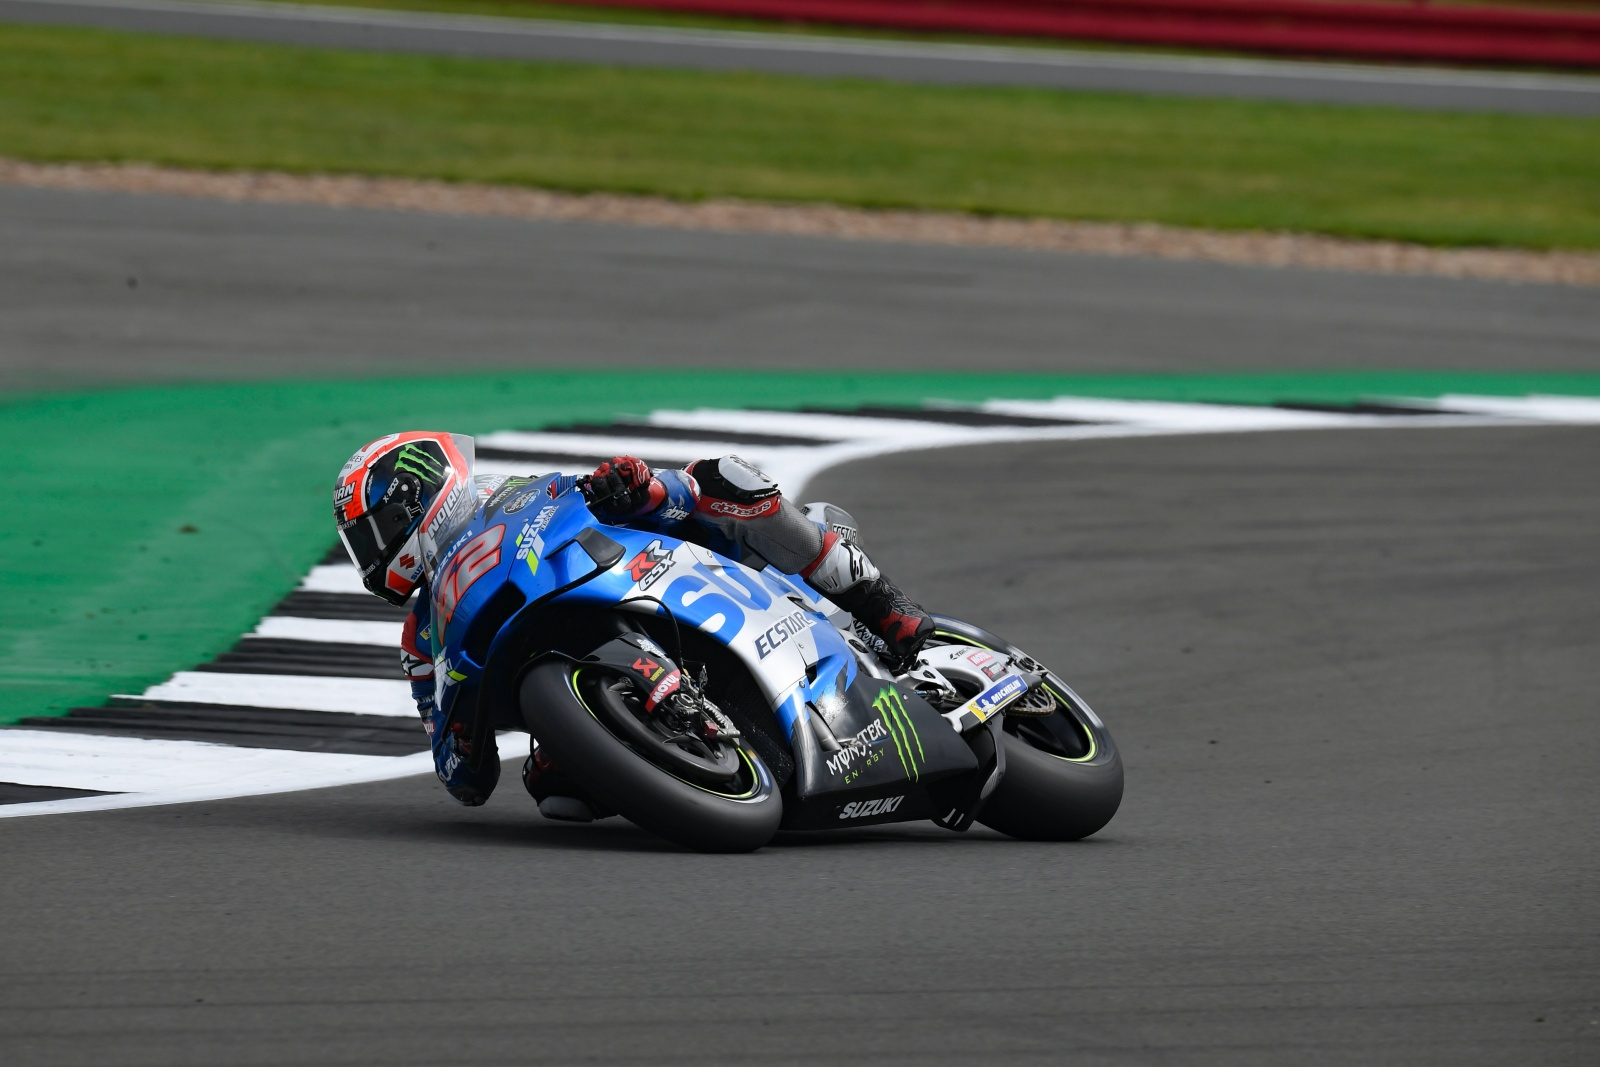 RINS AND MIR TO START MERCURIAL SILVERSTONE ON FOURTH ROW